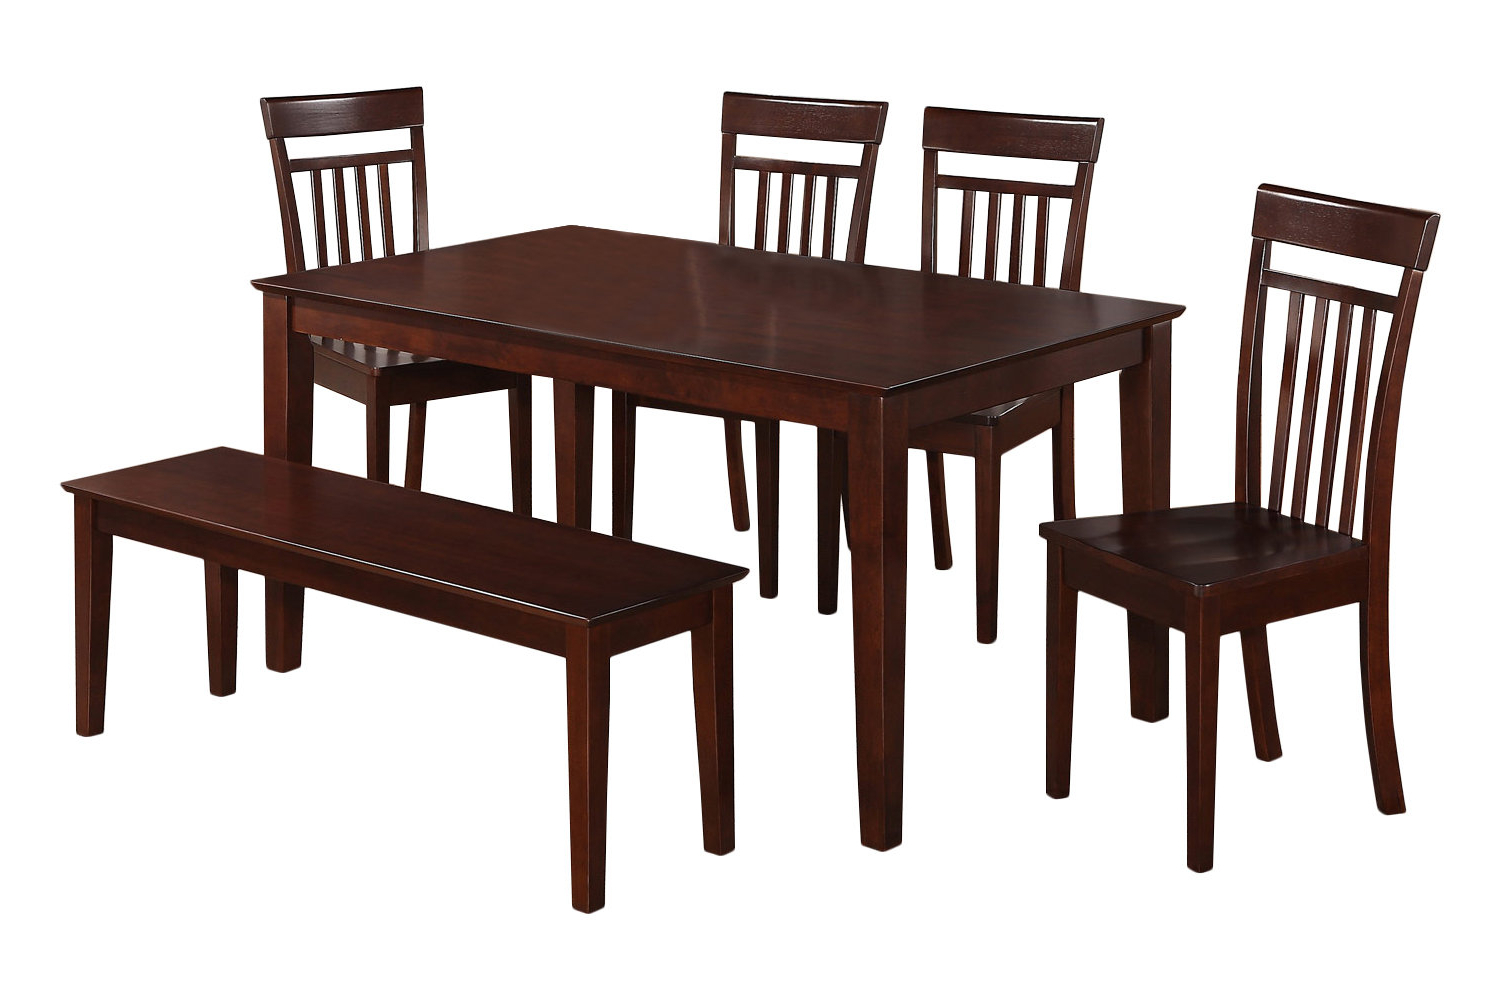 Best And Newest Smyrna 3 Piece Dining Sets Inside Charlton Home Smyrna 6 Piece Dining Set & Reviews (View 9 of 25)